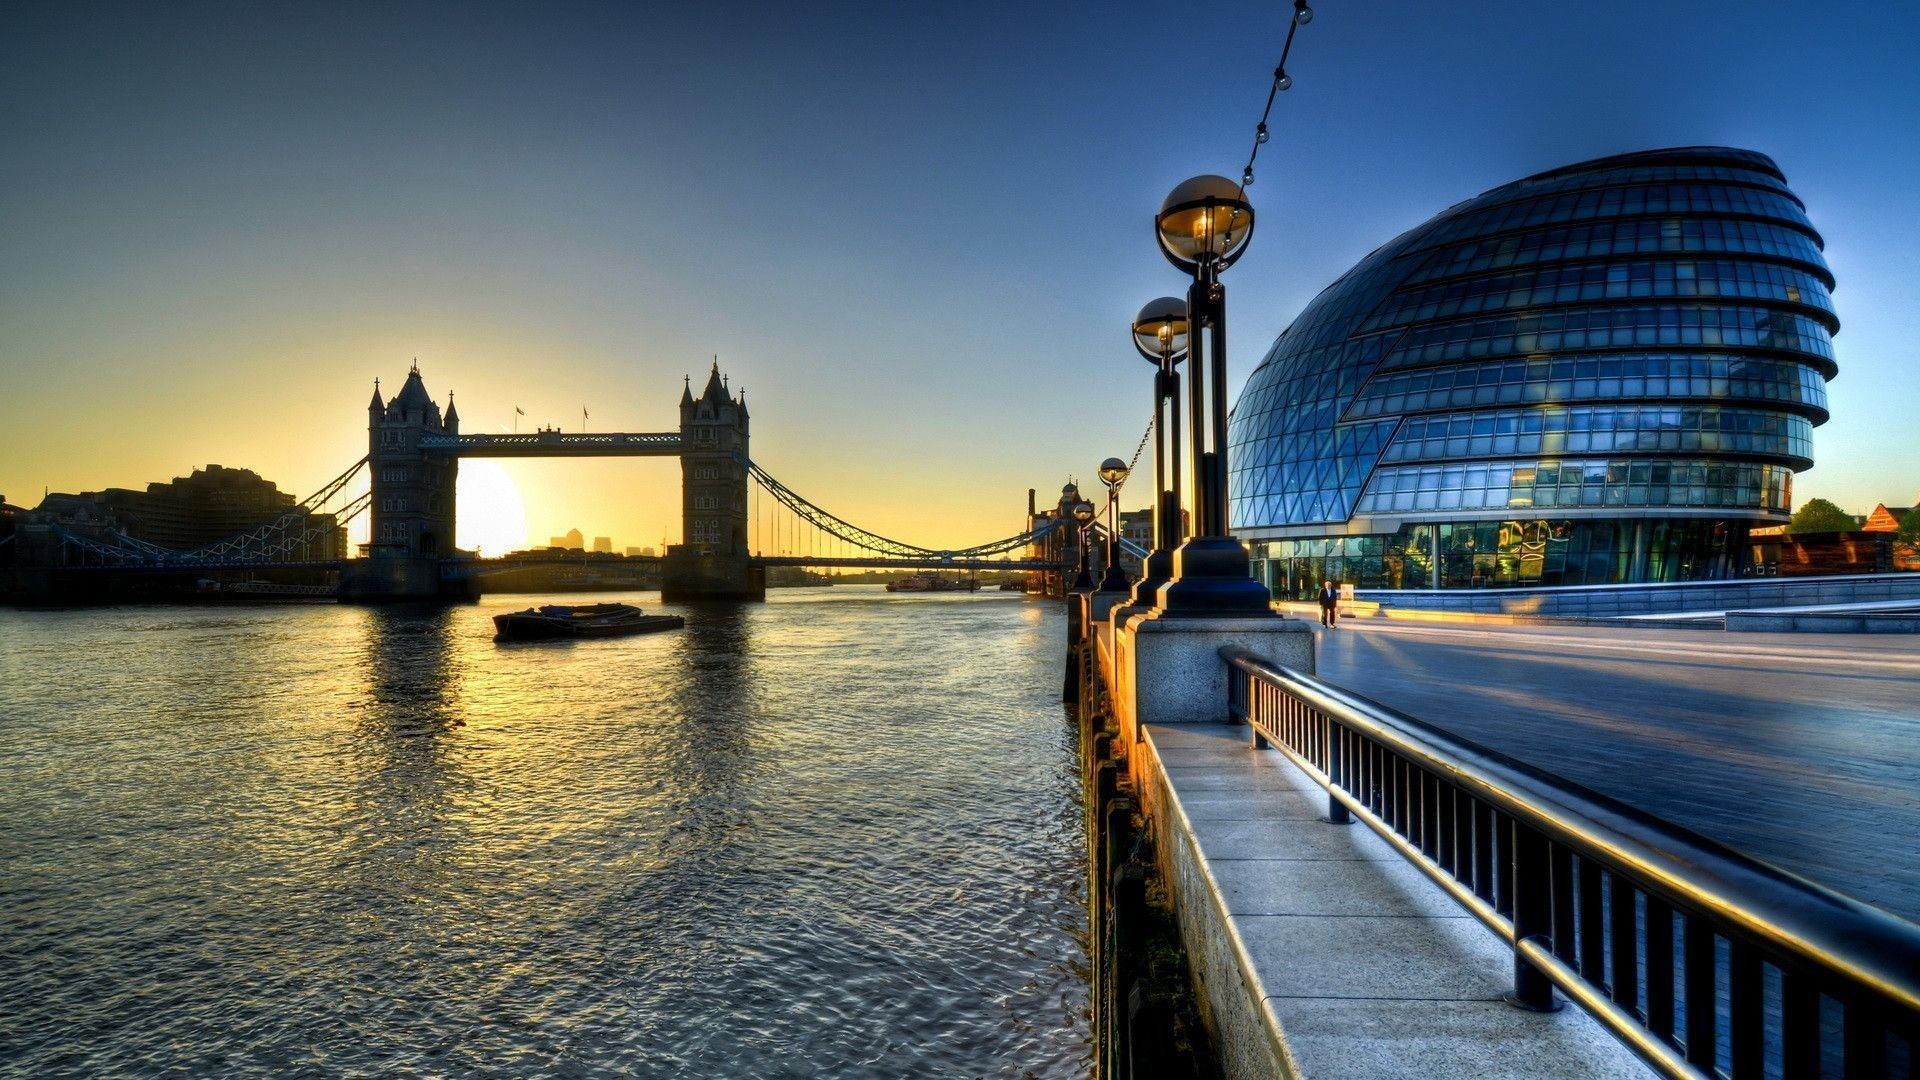 London Desktop Wallpaper Pictures | Wallpaper and Images